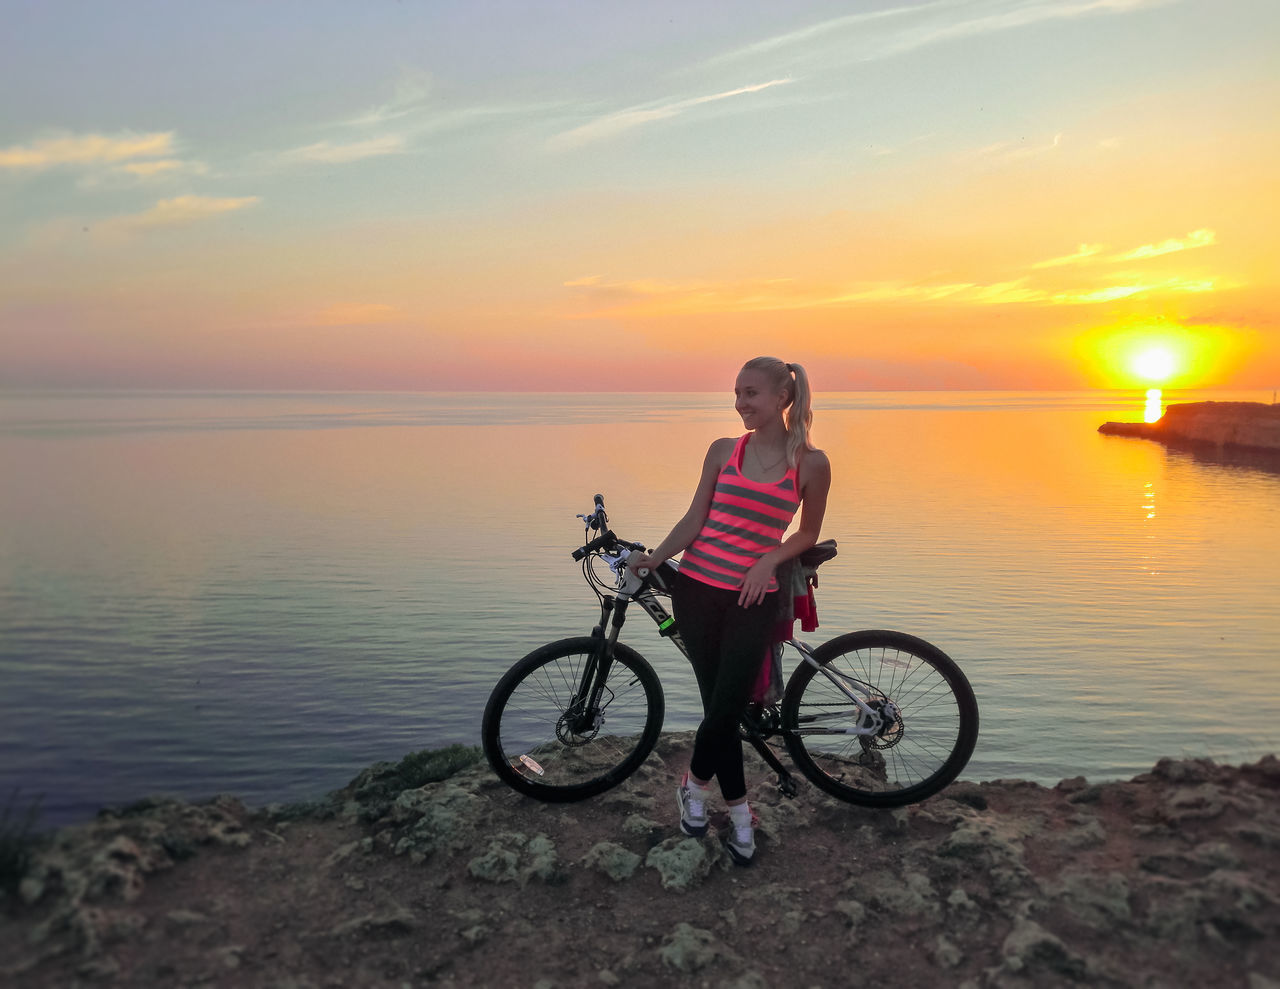 Me with my 🚲 One Person Landscape Huawei Honor6 Huawei Honor 6 Bicycle Sunset Horizon Over Water Sea Beauty In Nature Nature Outdoors Sky Water Sevastopol' Севастополь Russia Cremea Sevastopol  Tourism Beauty In Nature Adventure Vacations Nature